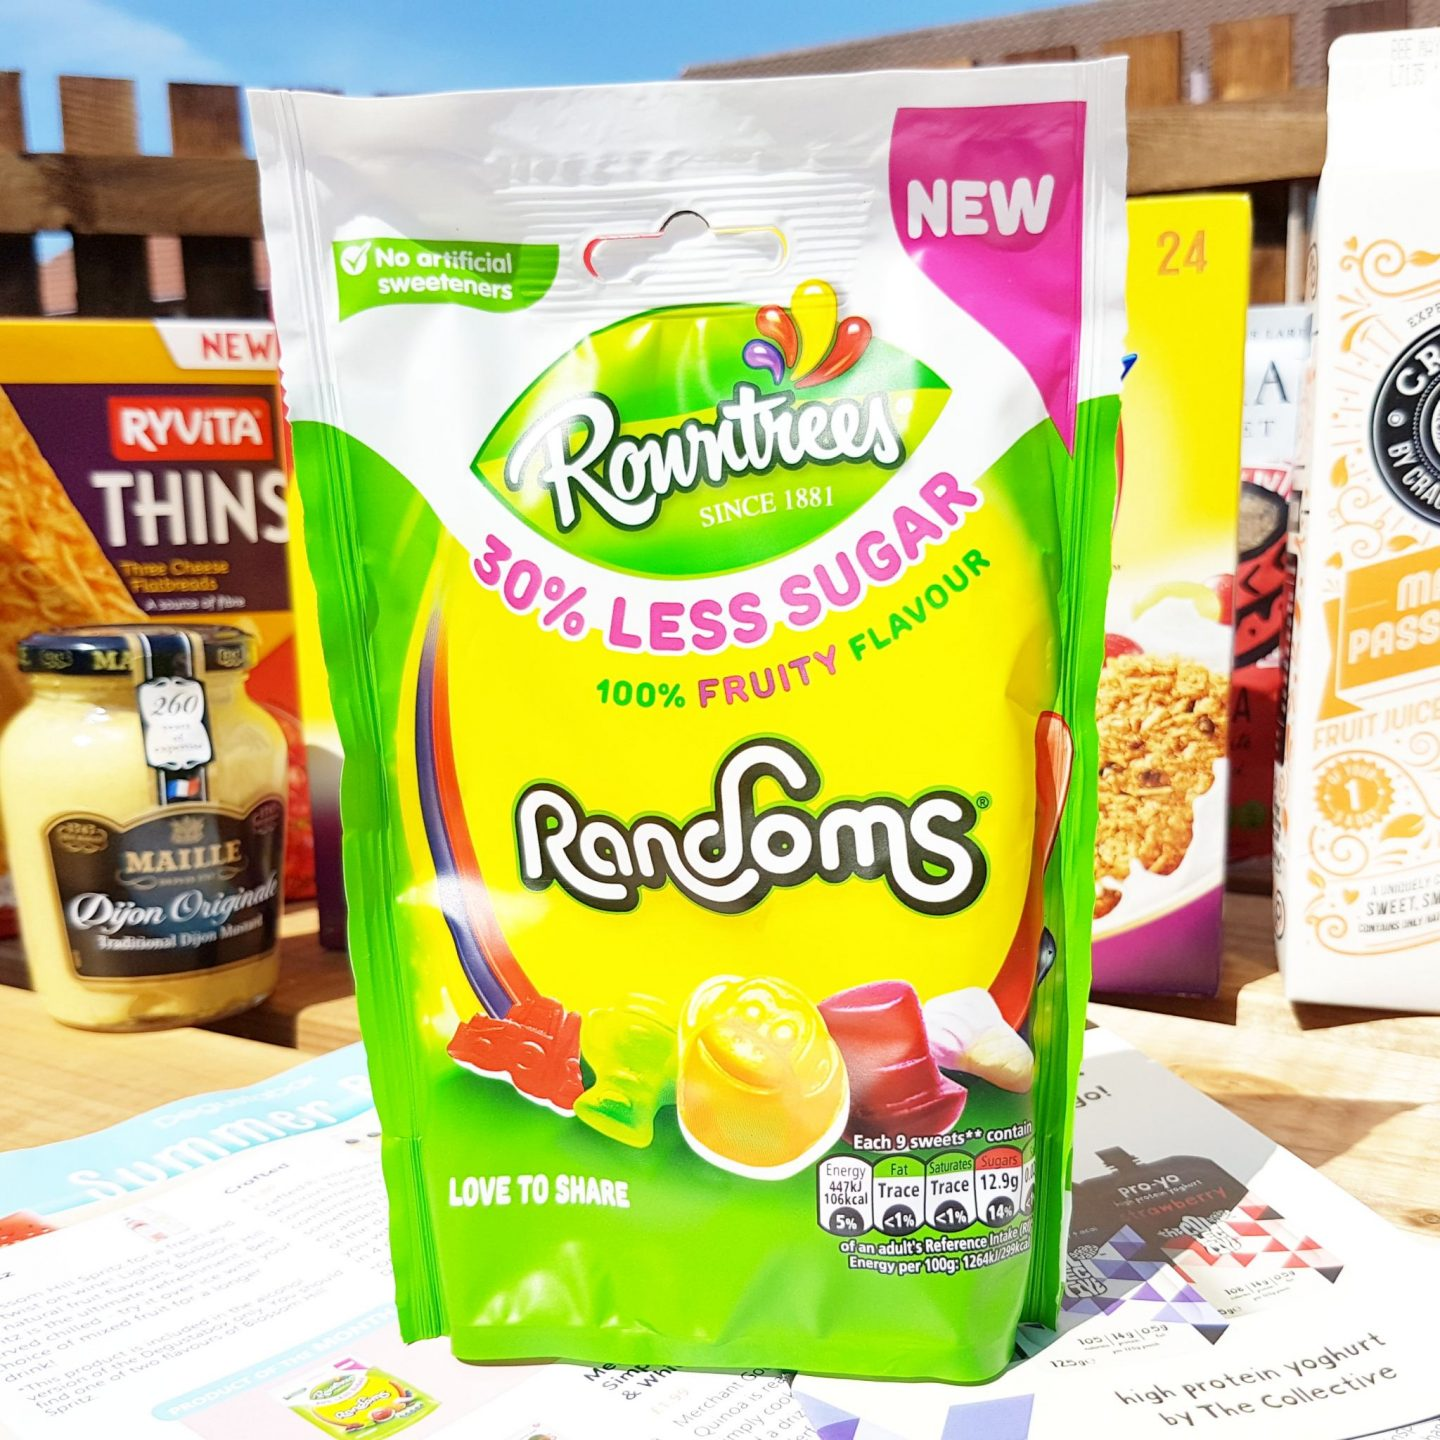 Degustabox | Rowntree's Randoms with 30% less sugar.